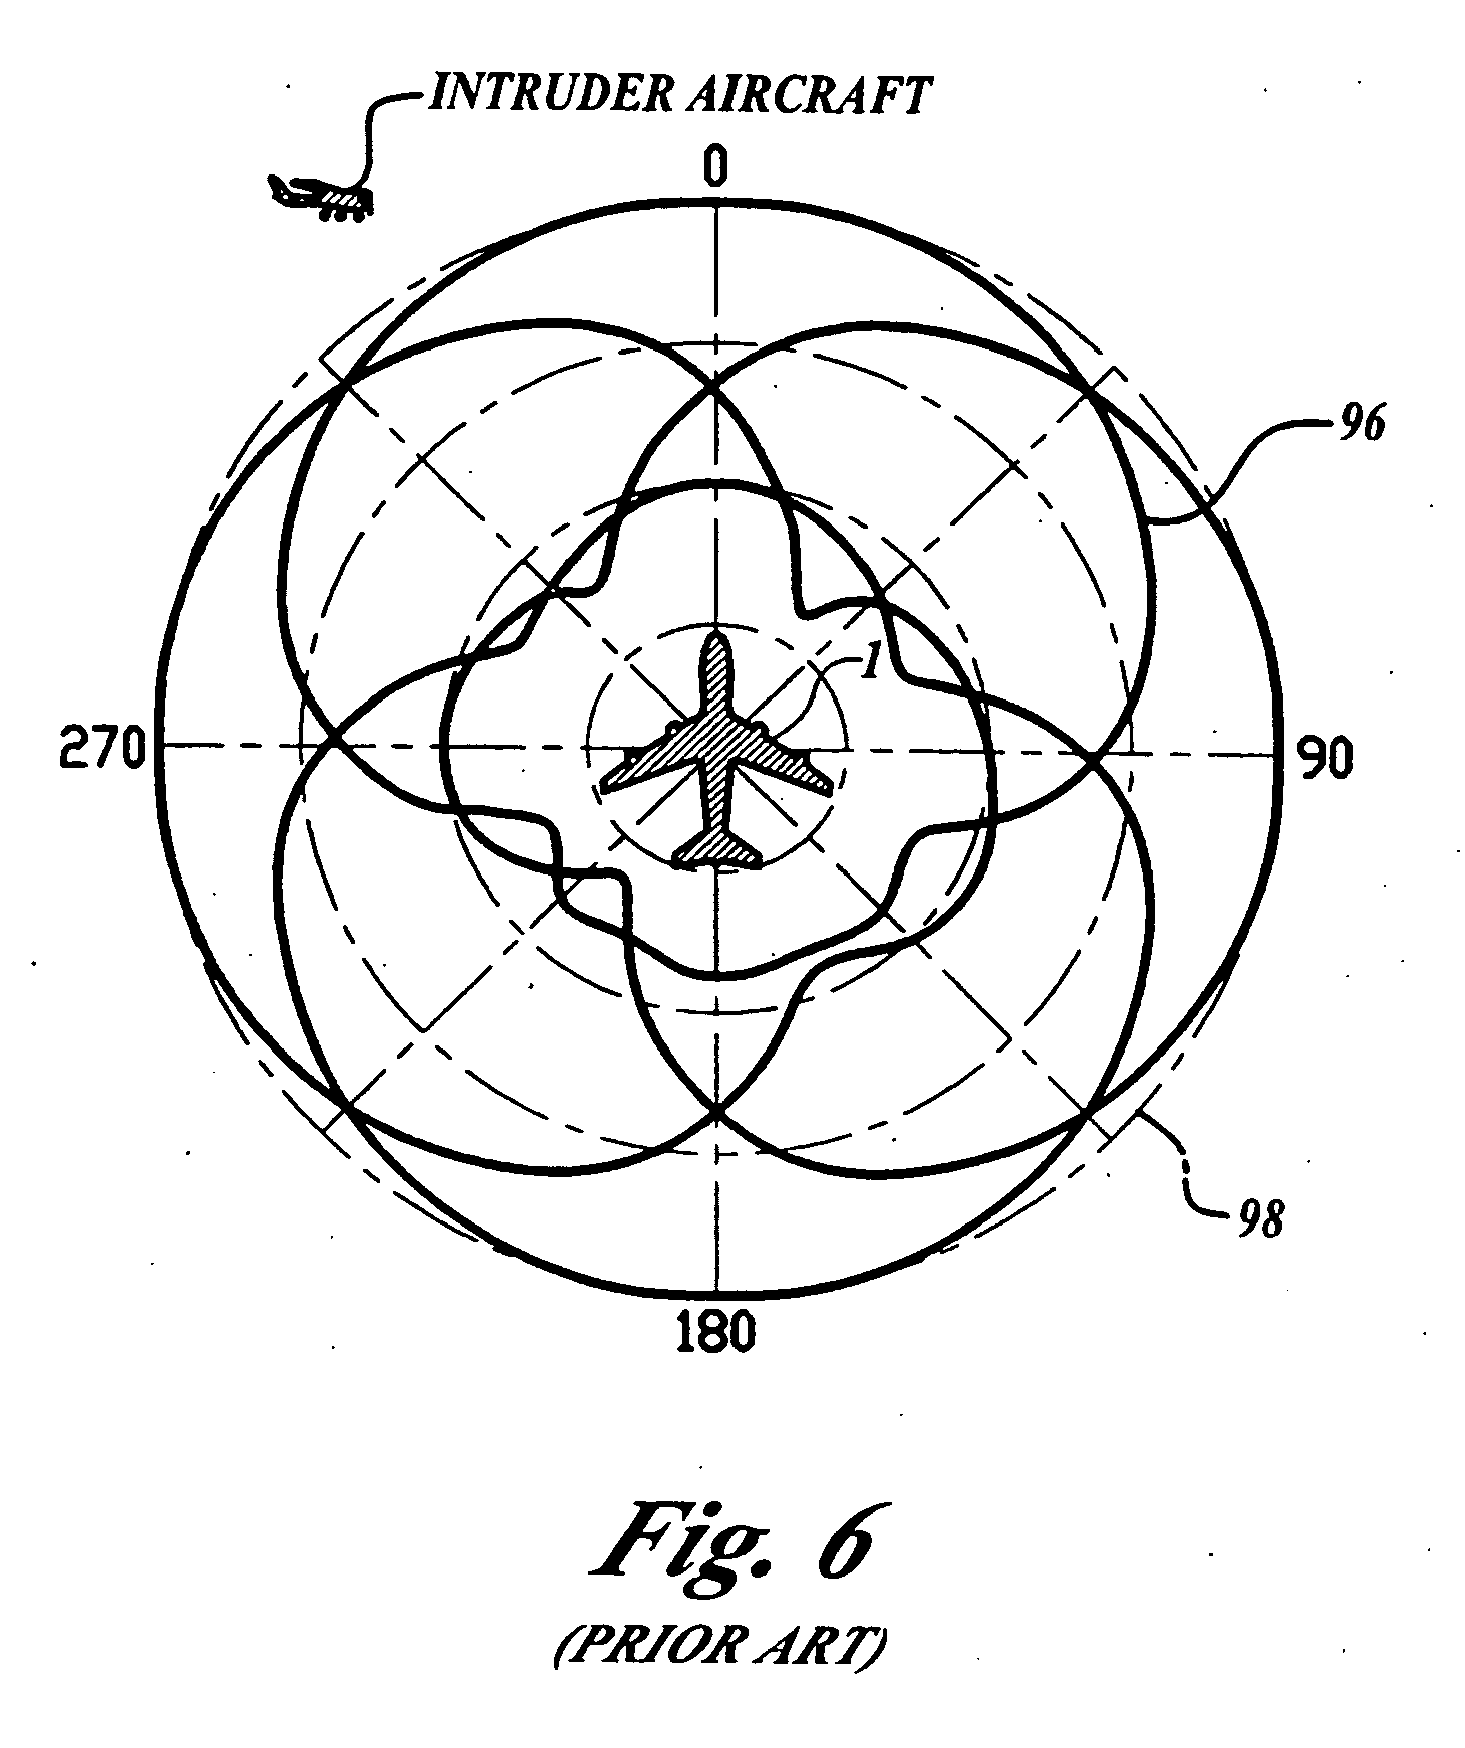 patent ep1200852b1 - transponder having directional antennas